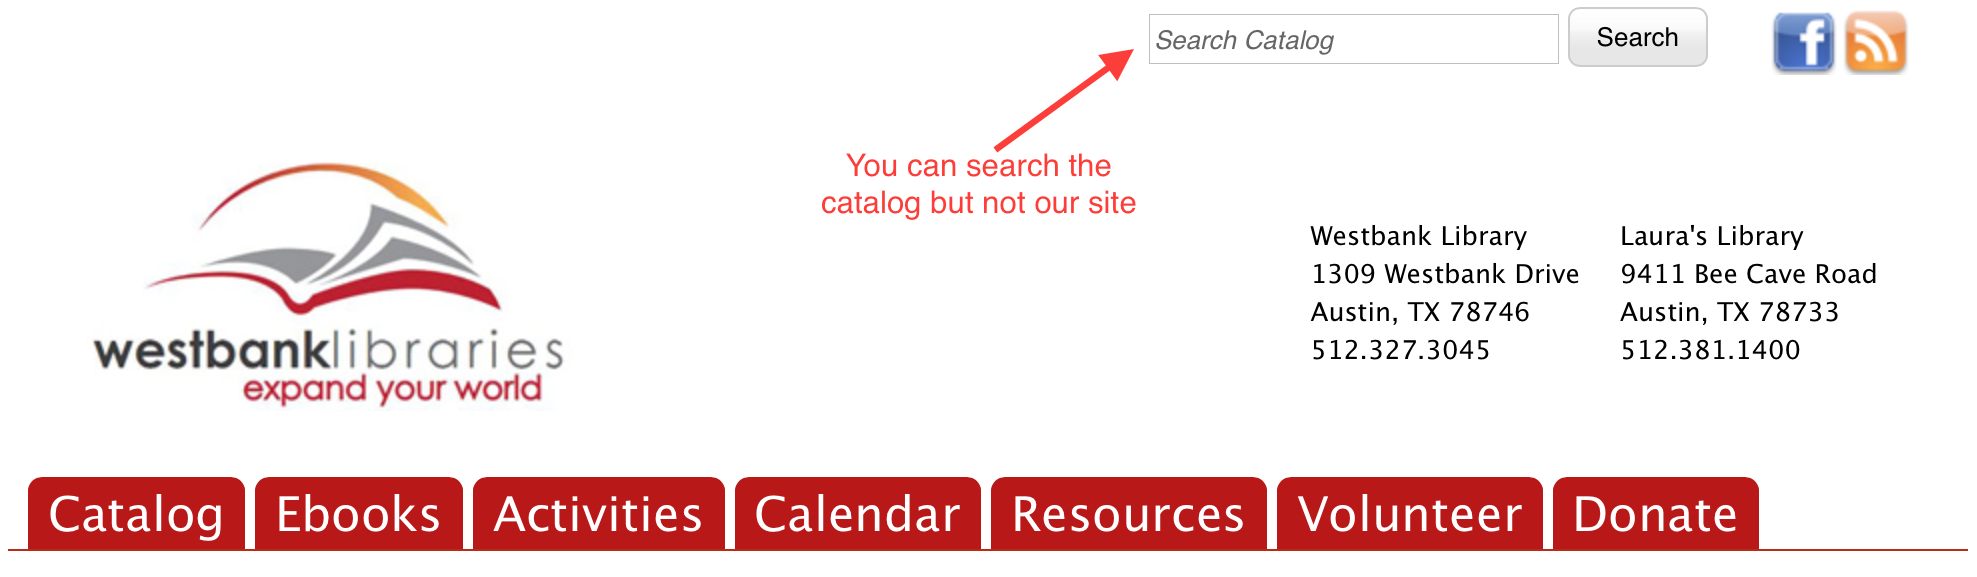 We changed the site search bar to be a catalog search, but it still wasn't perfect